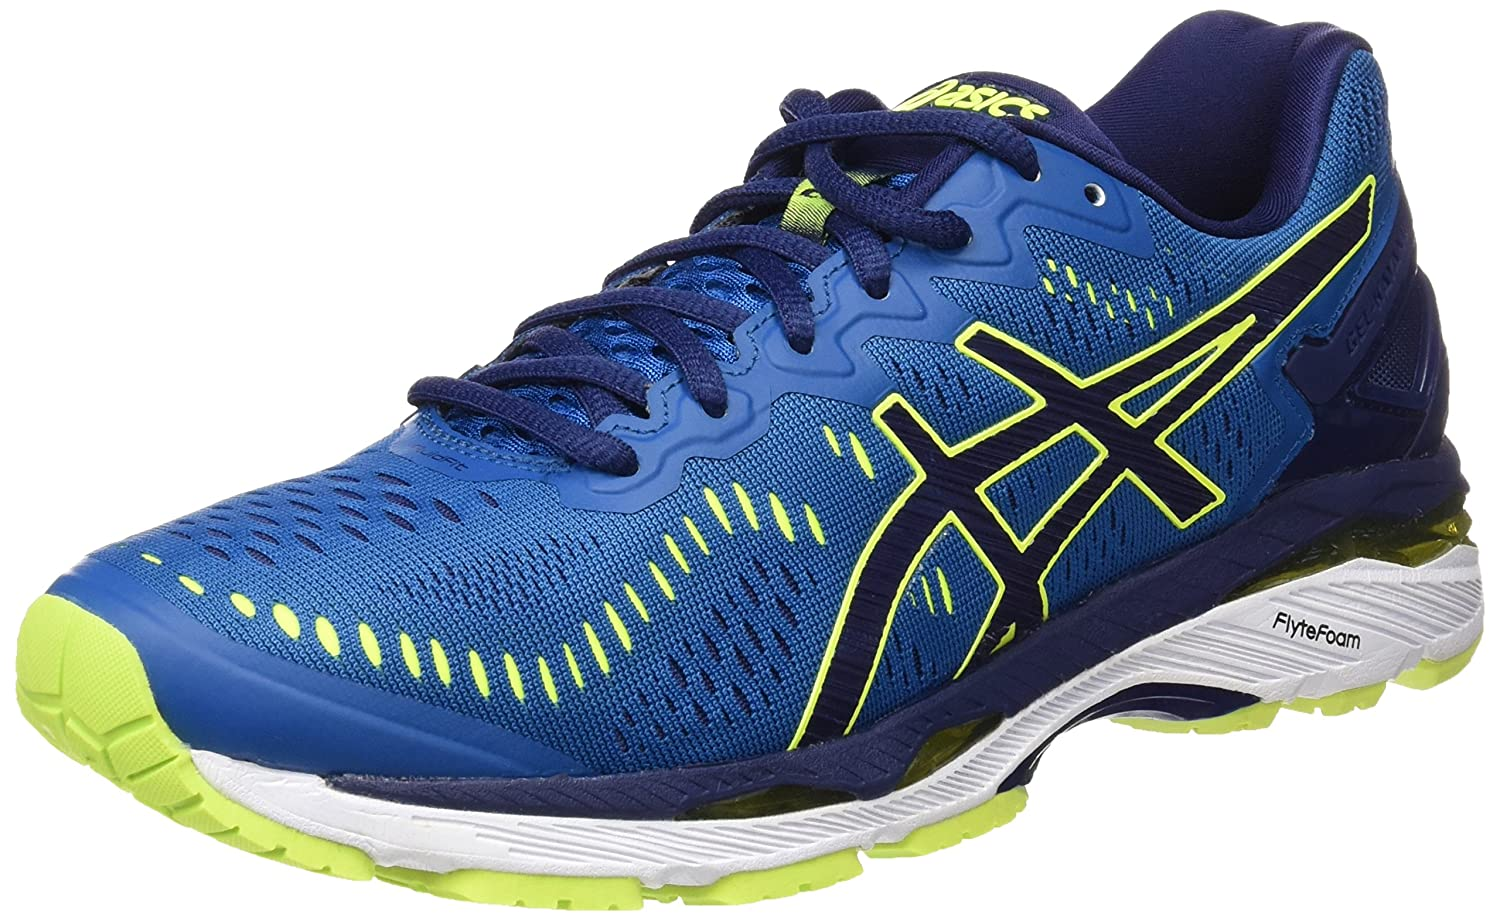 competitive price f7e39 70713 Asics Mens Gel-Kayano 23 Running Shoe